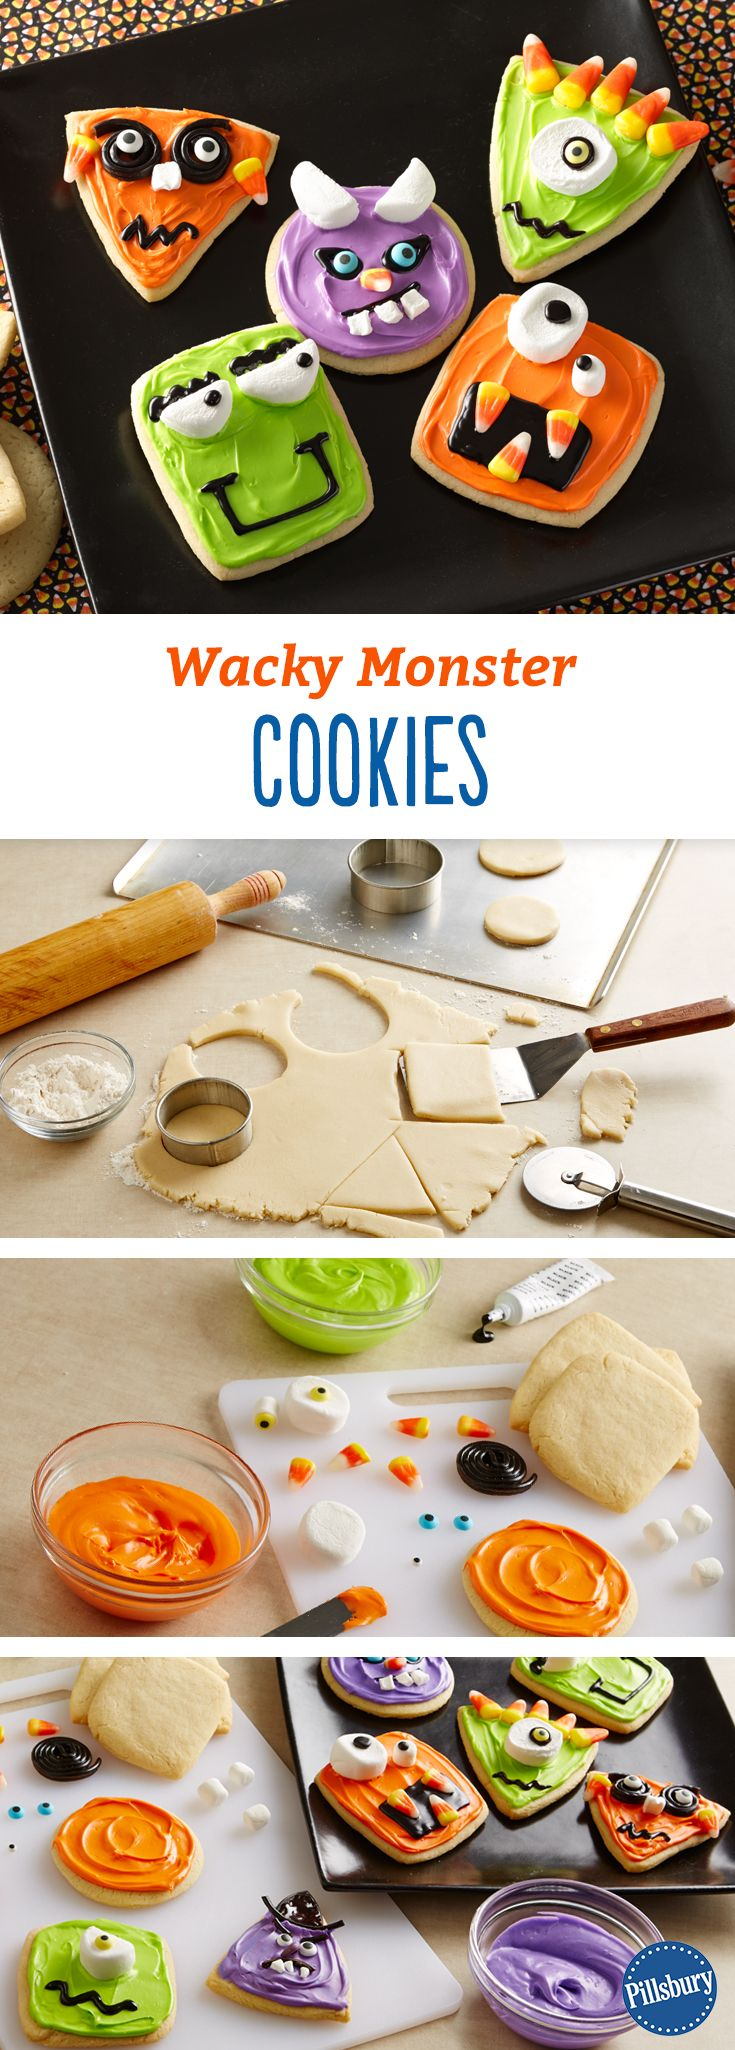 17 best images about Halloween Treats and Sweets with Dixie ...